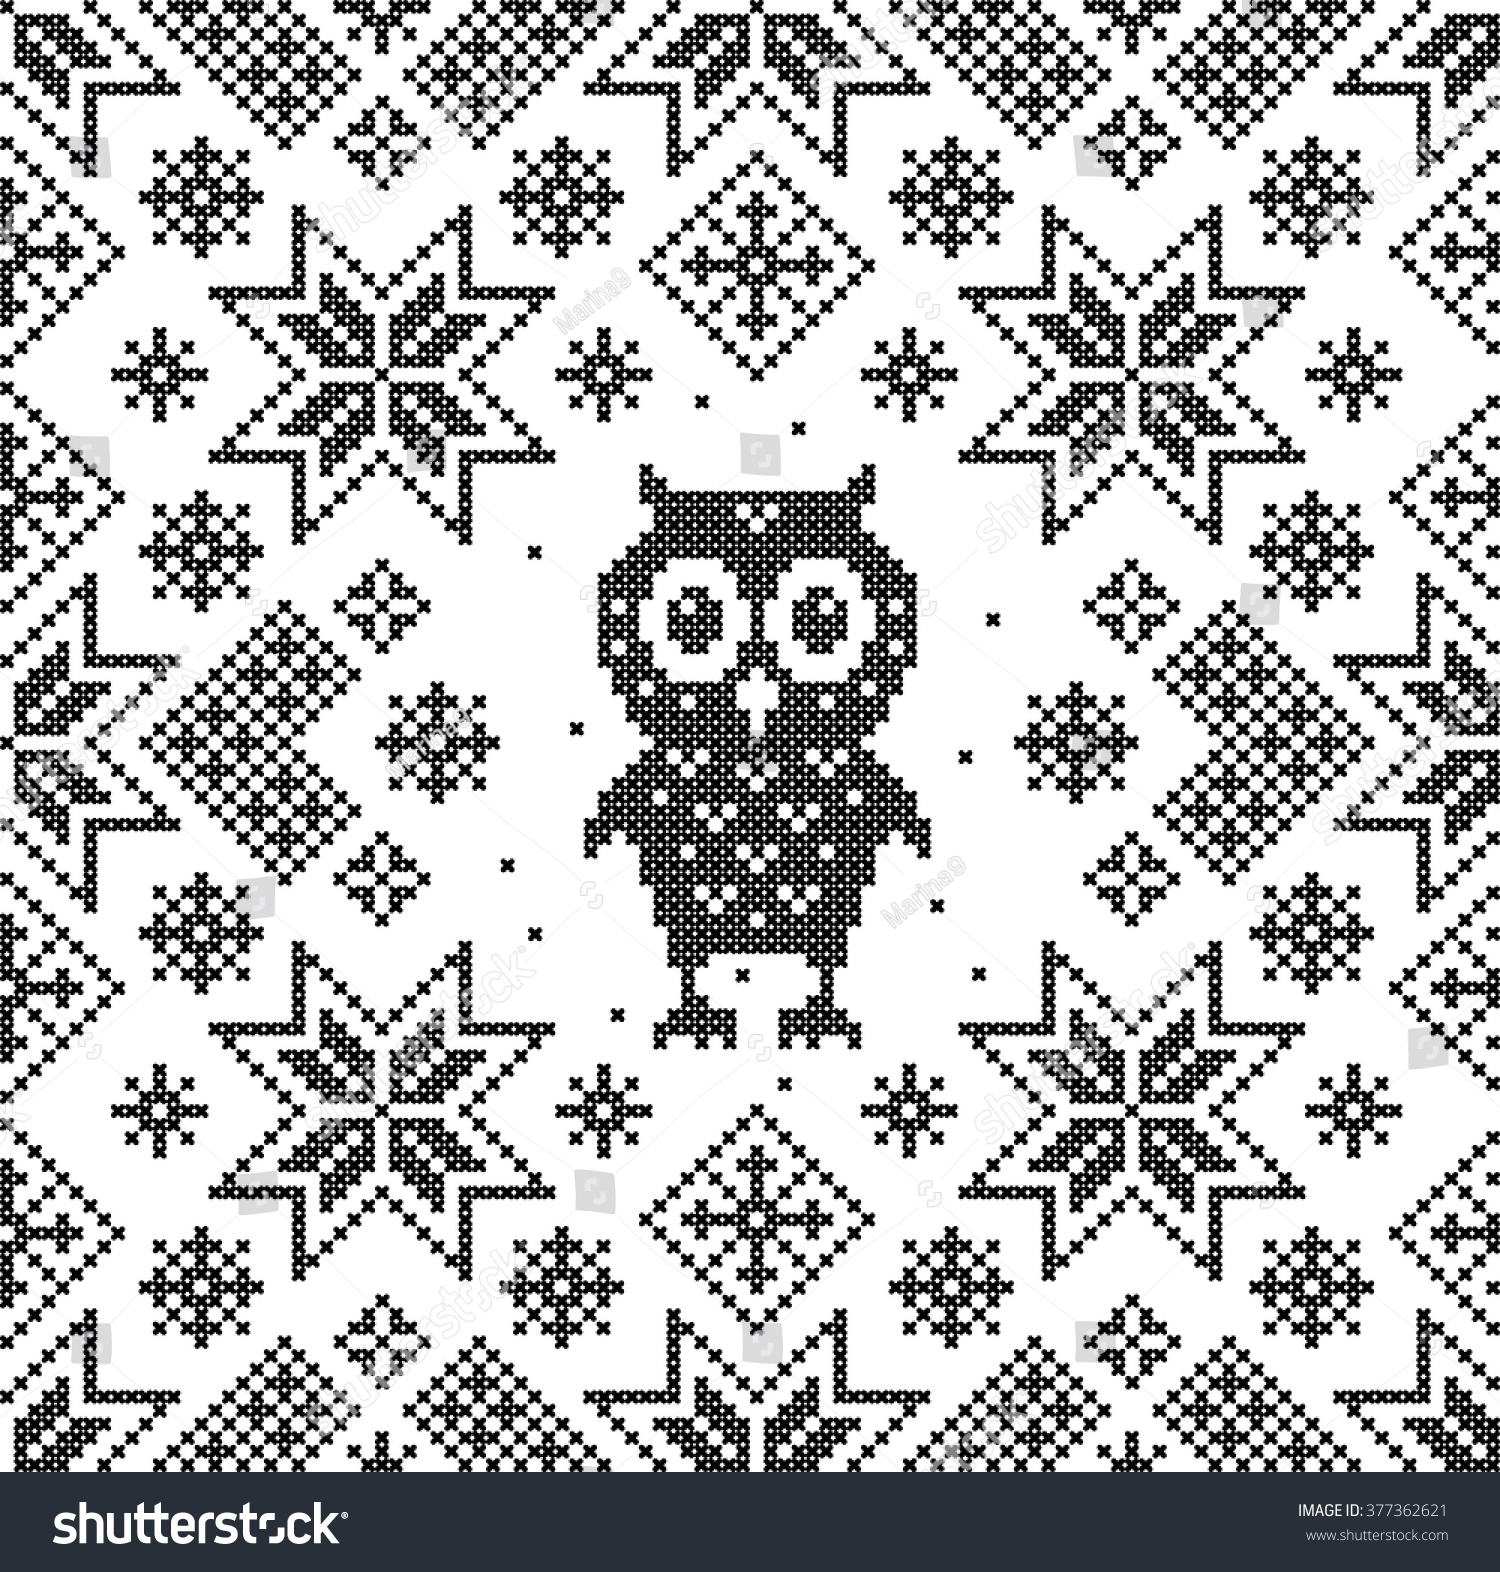 Owl Cross Stitch Christmas Sweater Design Stock Vector (Royalty Free ...